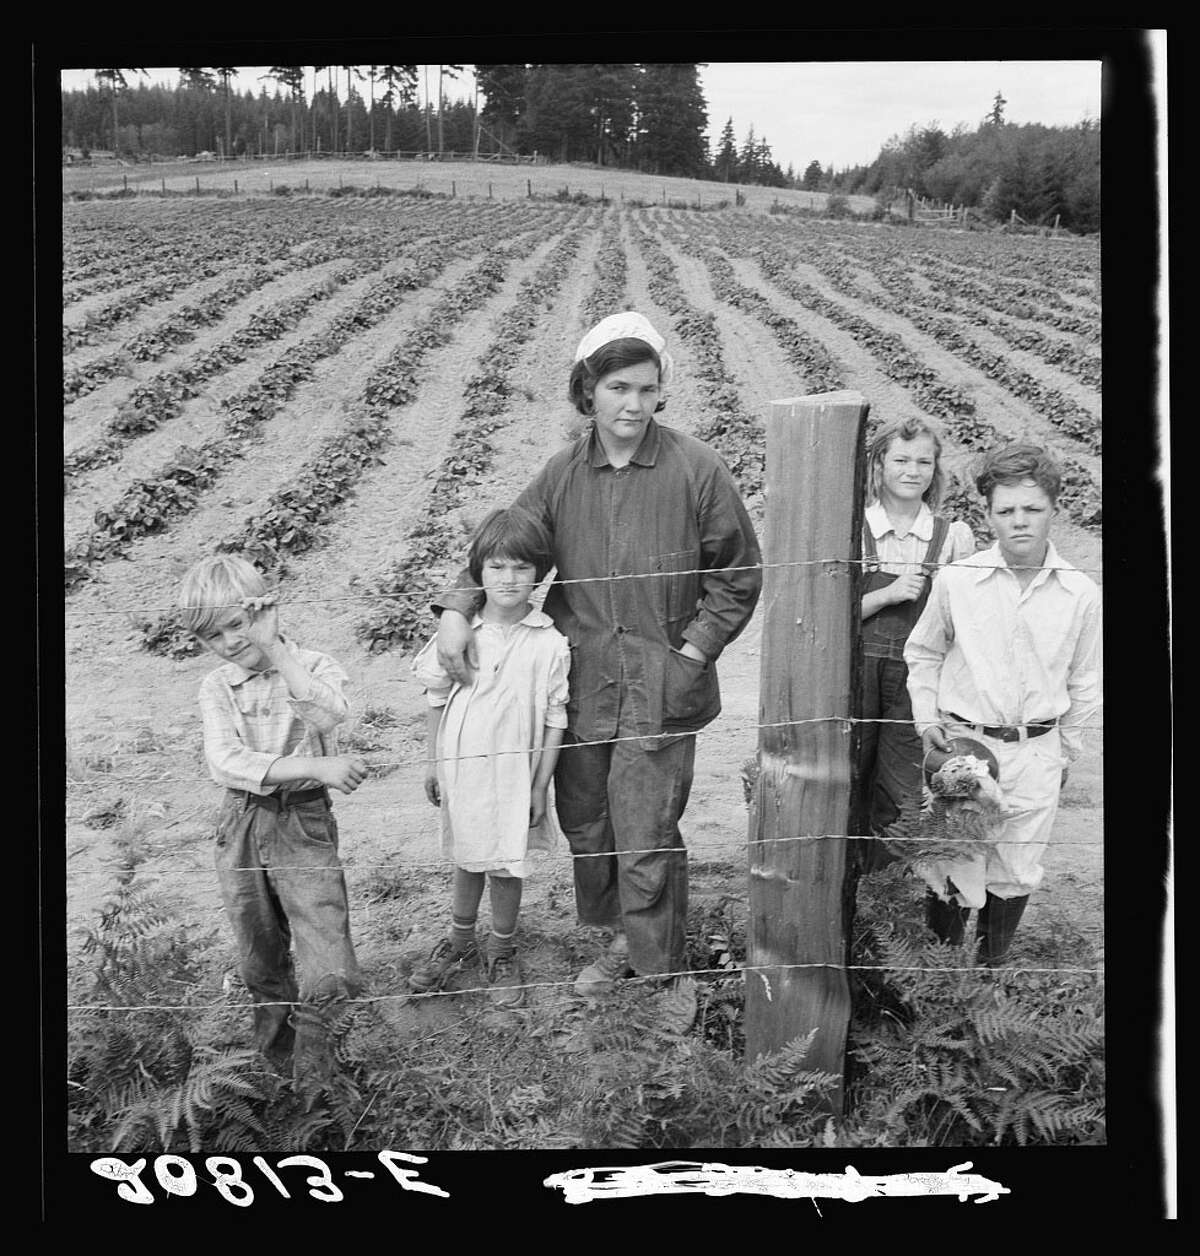 Original caption: The Arnold children and mother on their newly fenced and newly cleared land. Note strawberry plants. Western Washington, Thurston County, Michigan Hill. Photo by Dorothea Lange, August 1939.